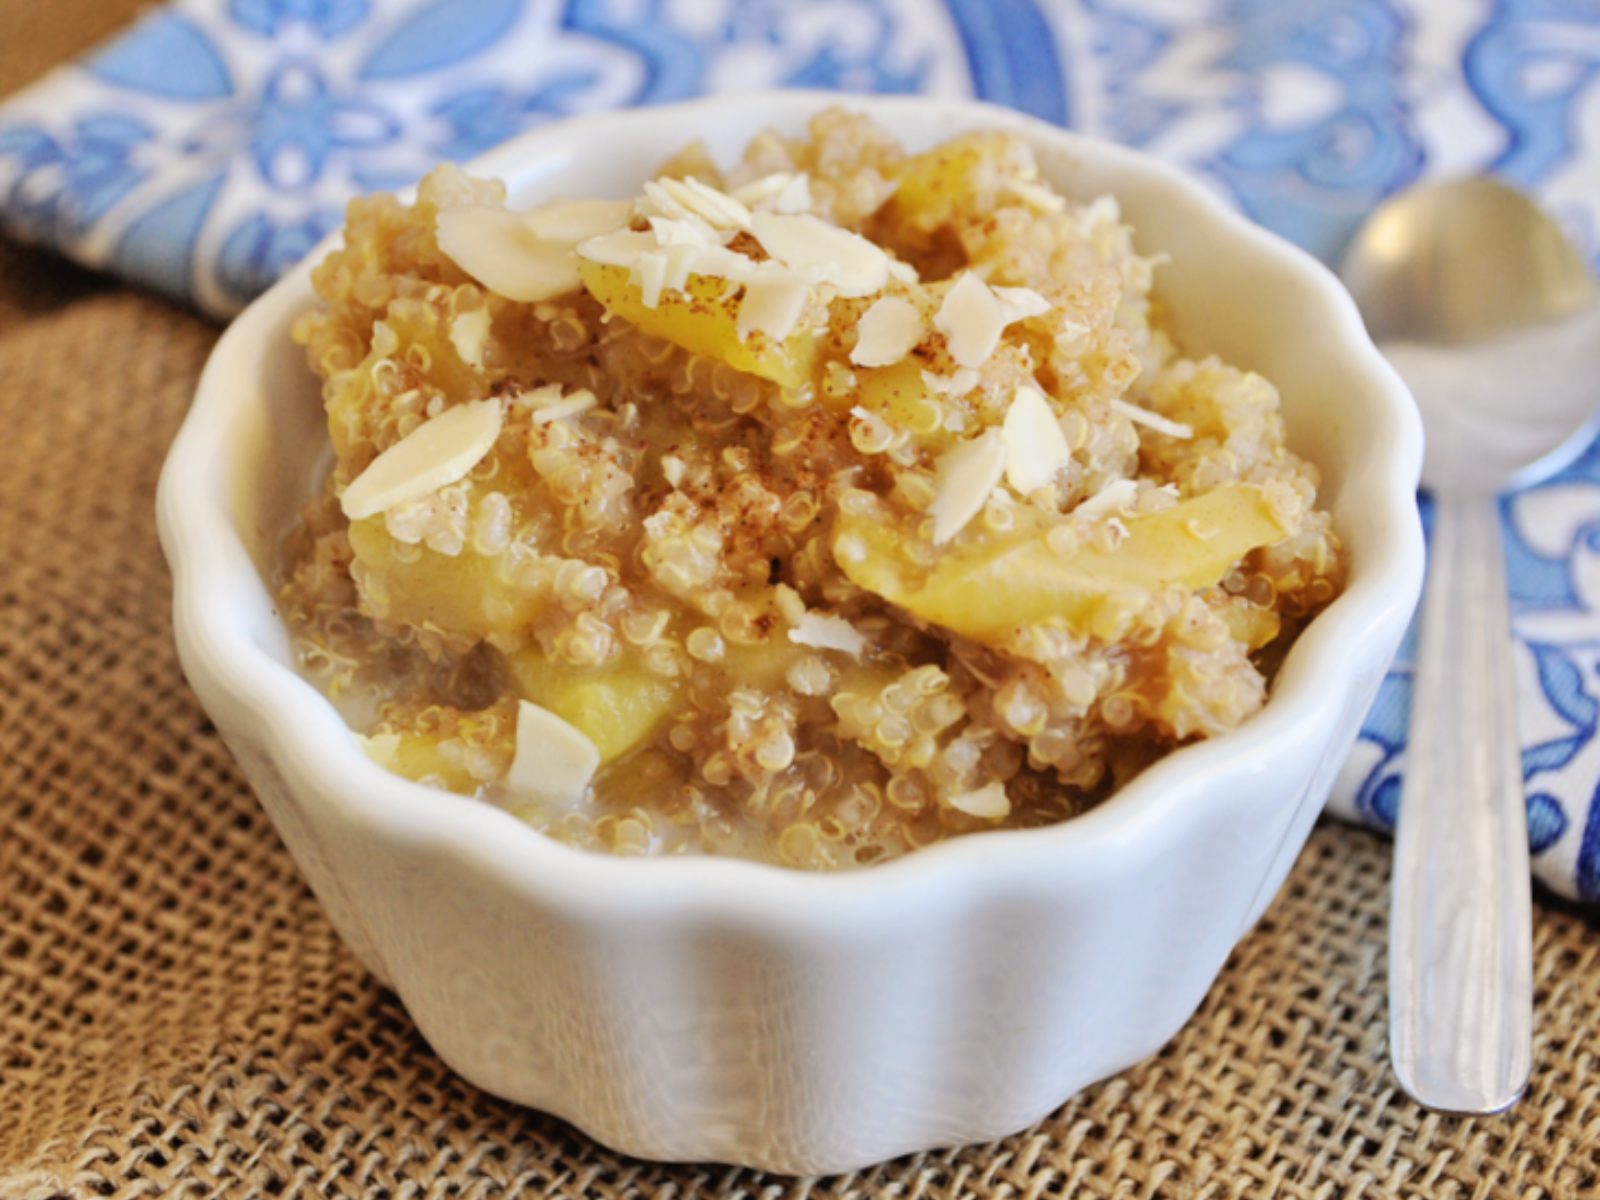 Quinoa Breakfast Bowl with Cinnamon Apples and Agave